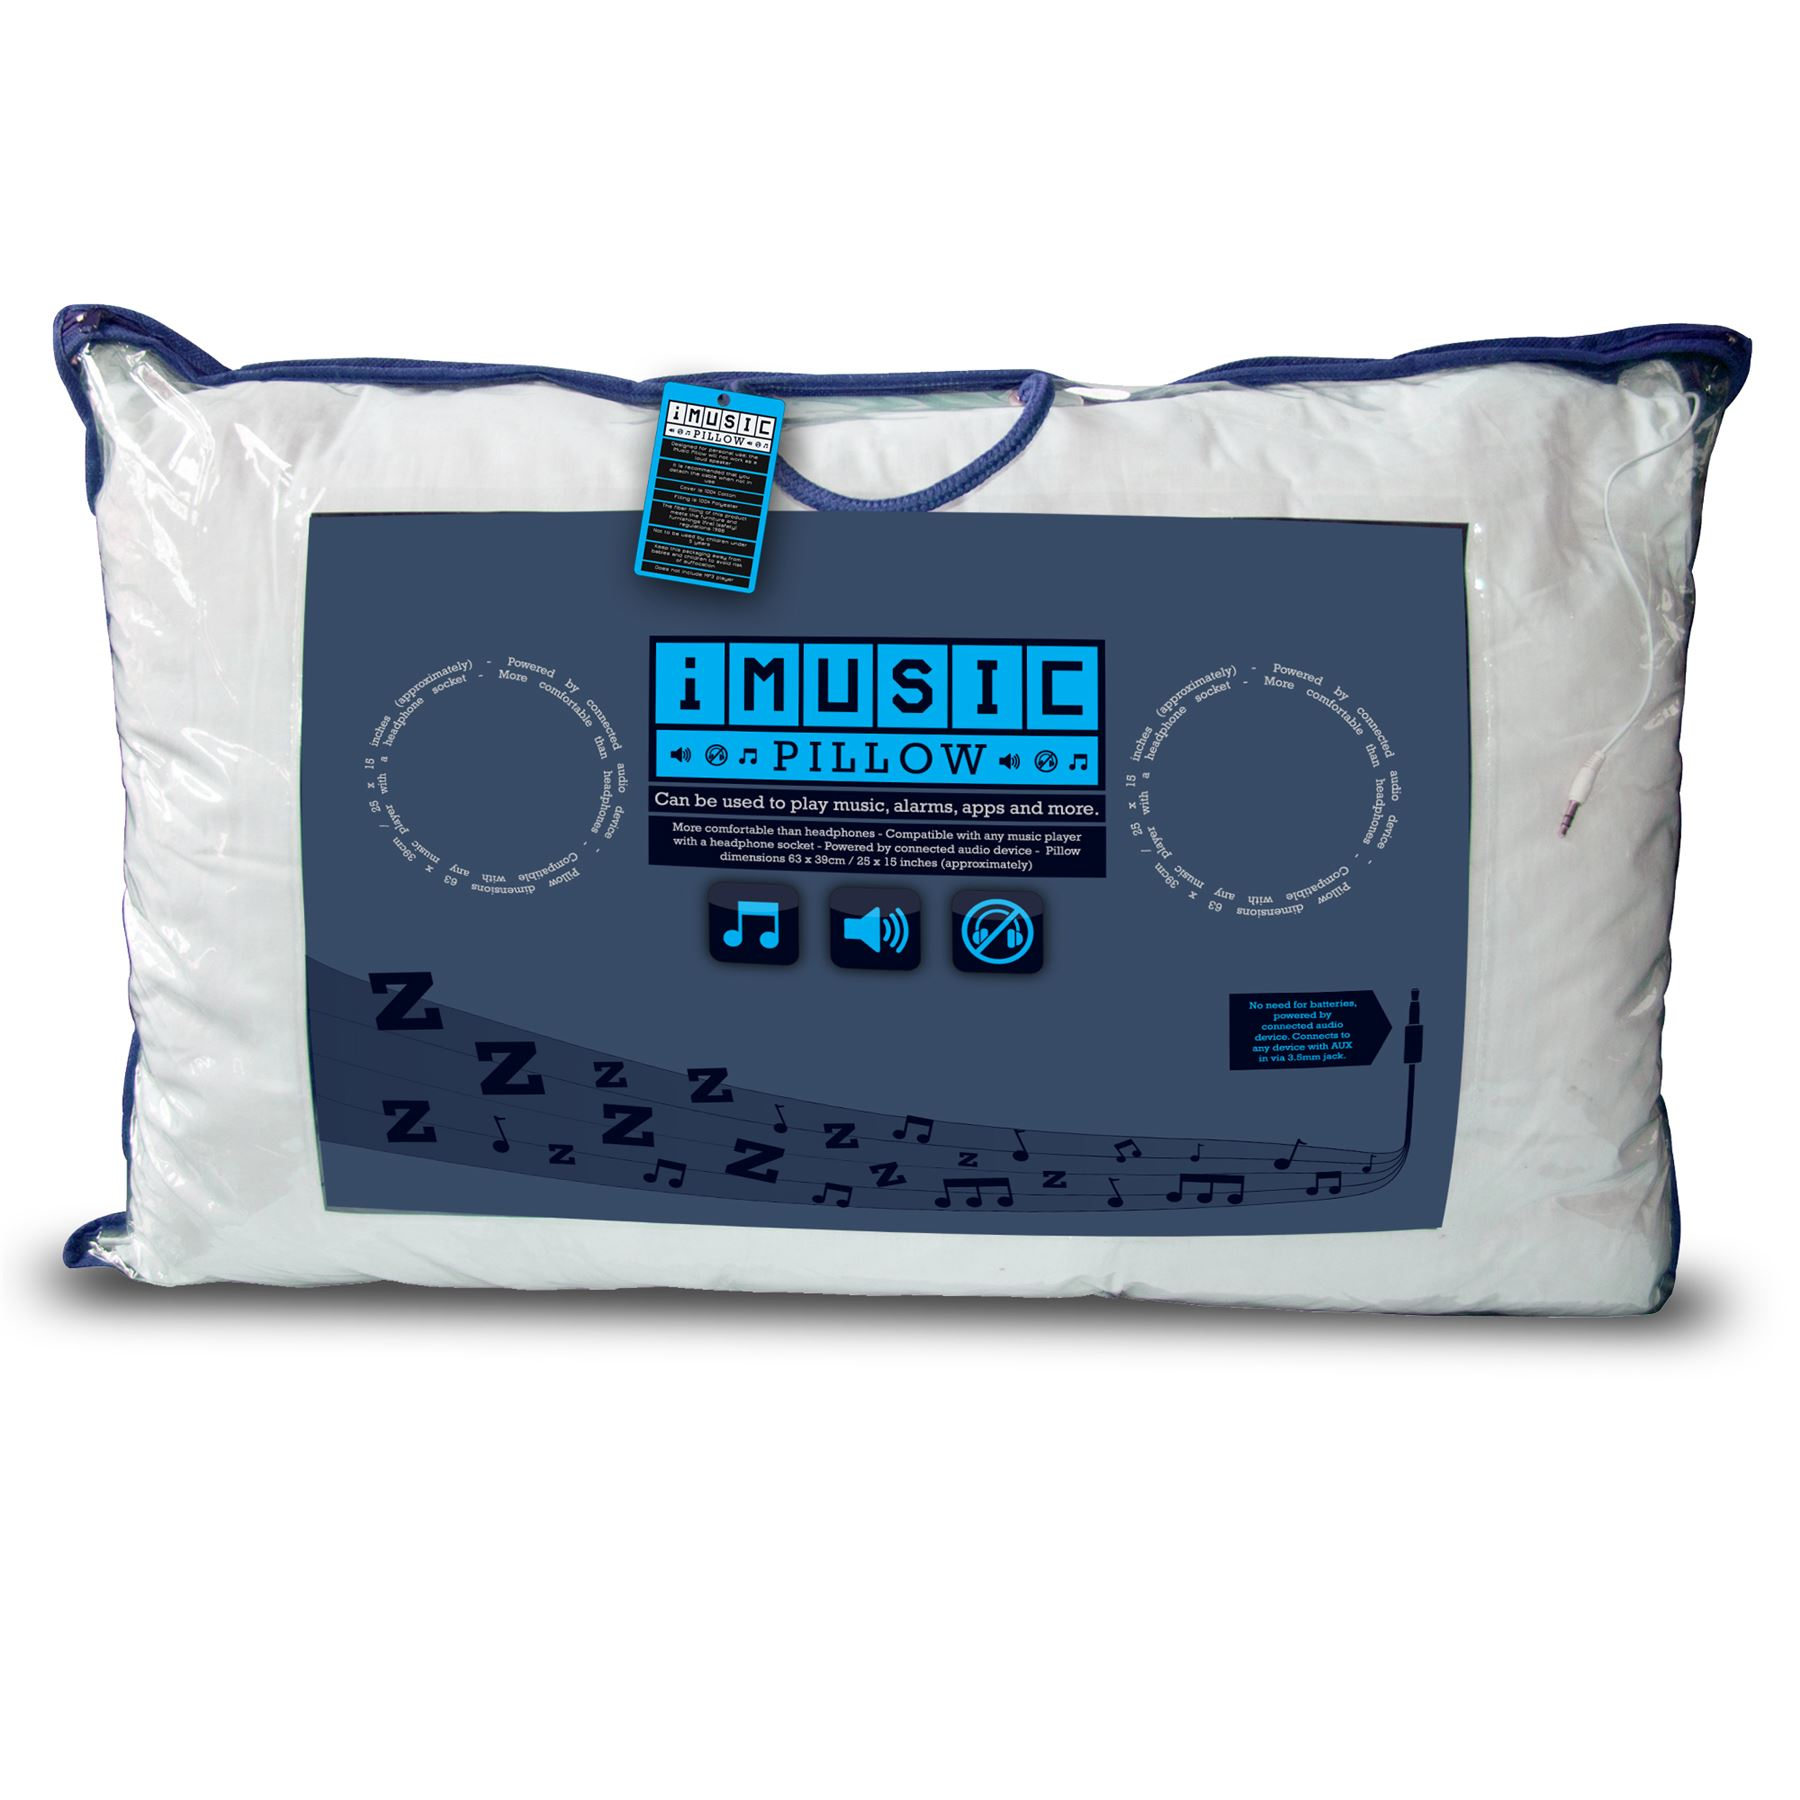 Music pillow cushion built in speakers imusic iphone ipod for Music speaker pillow